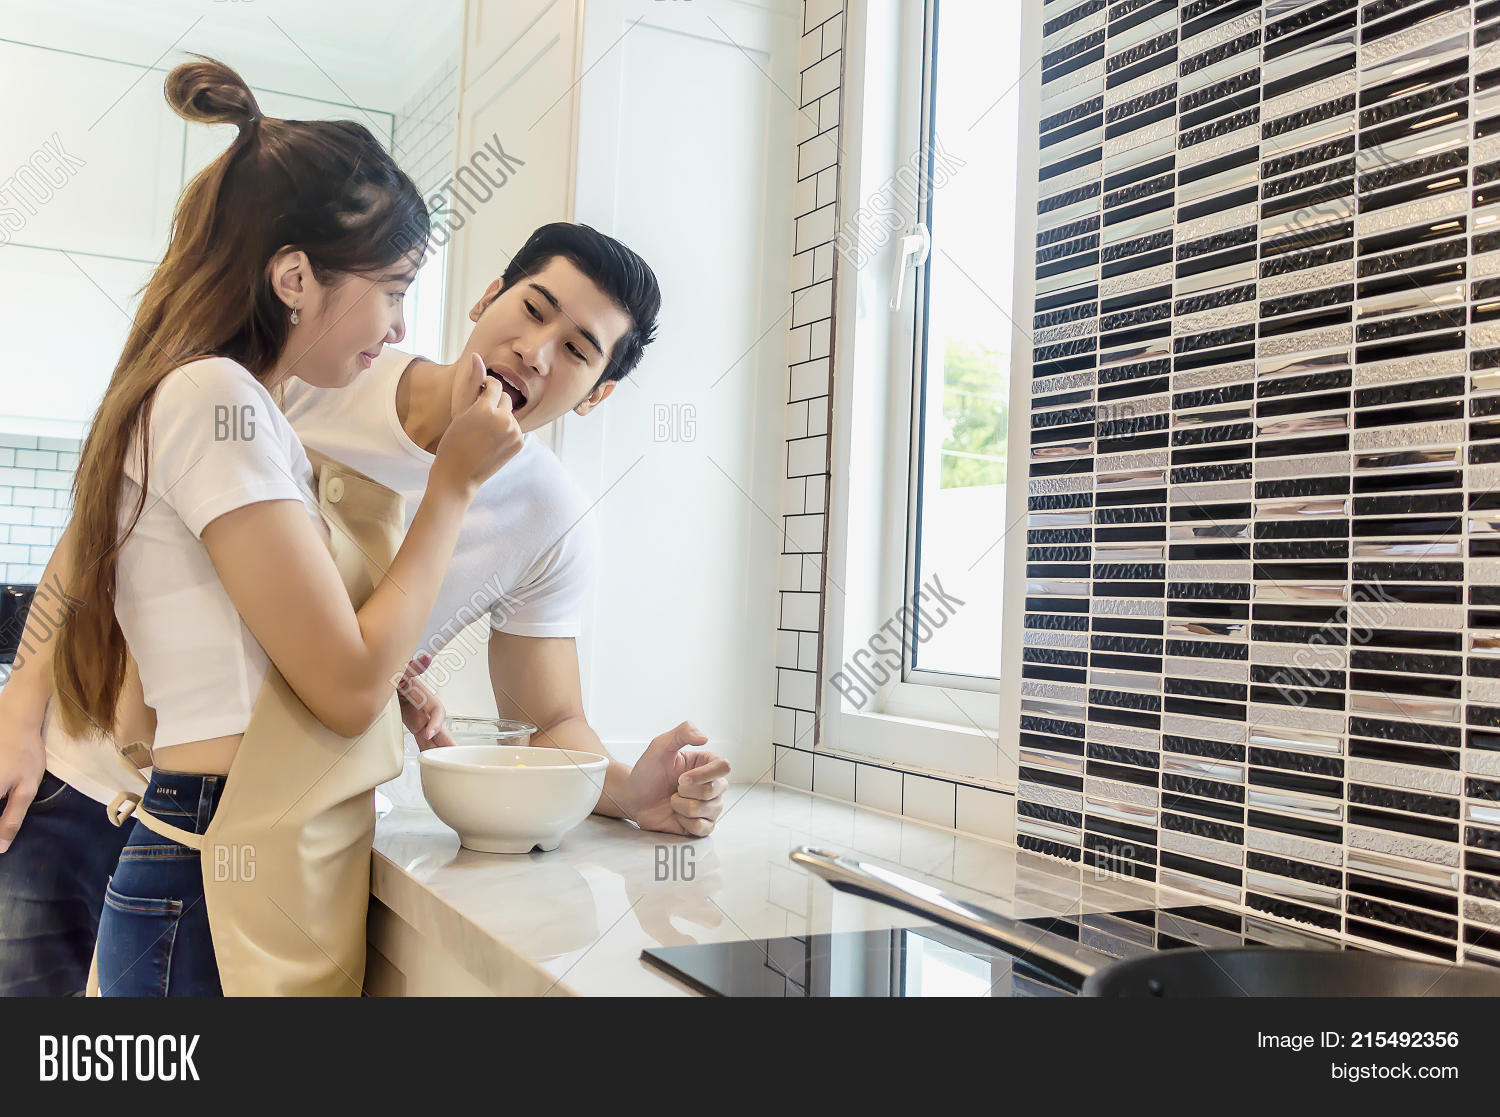 Sweet Couple Home Image & Photo (Free Trial) | Bigstock